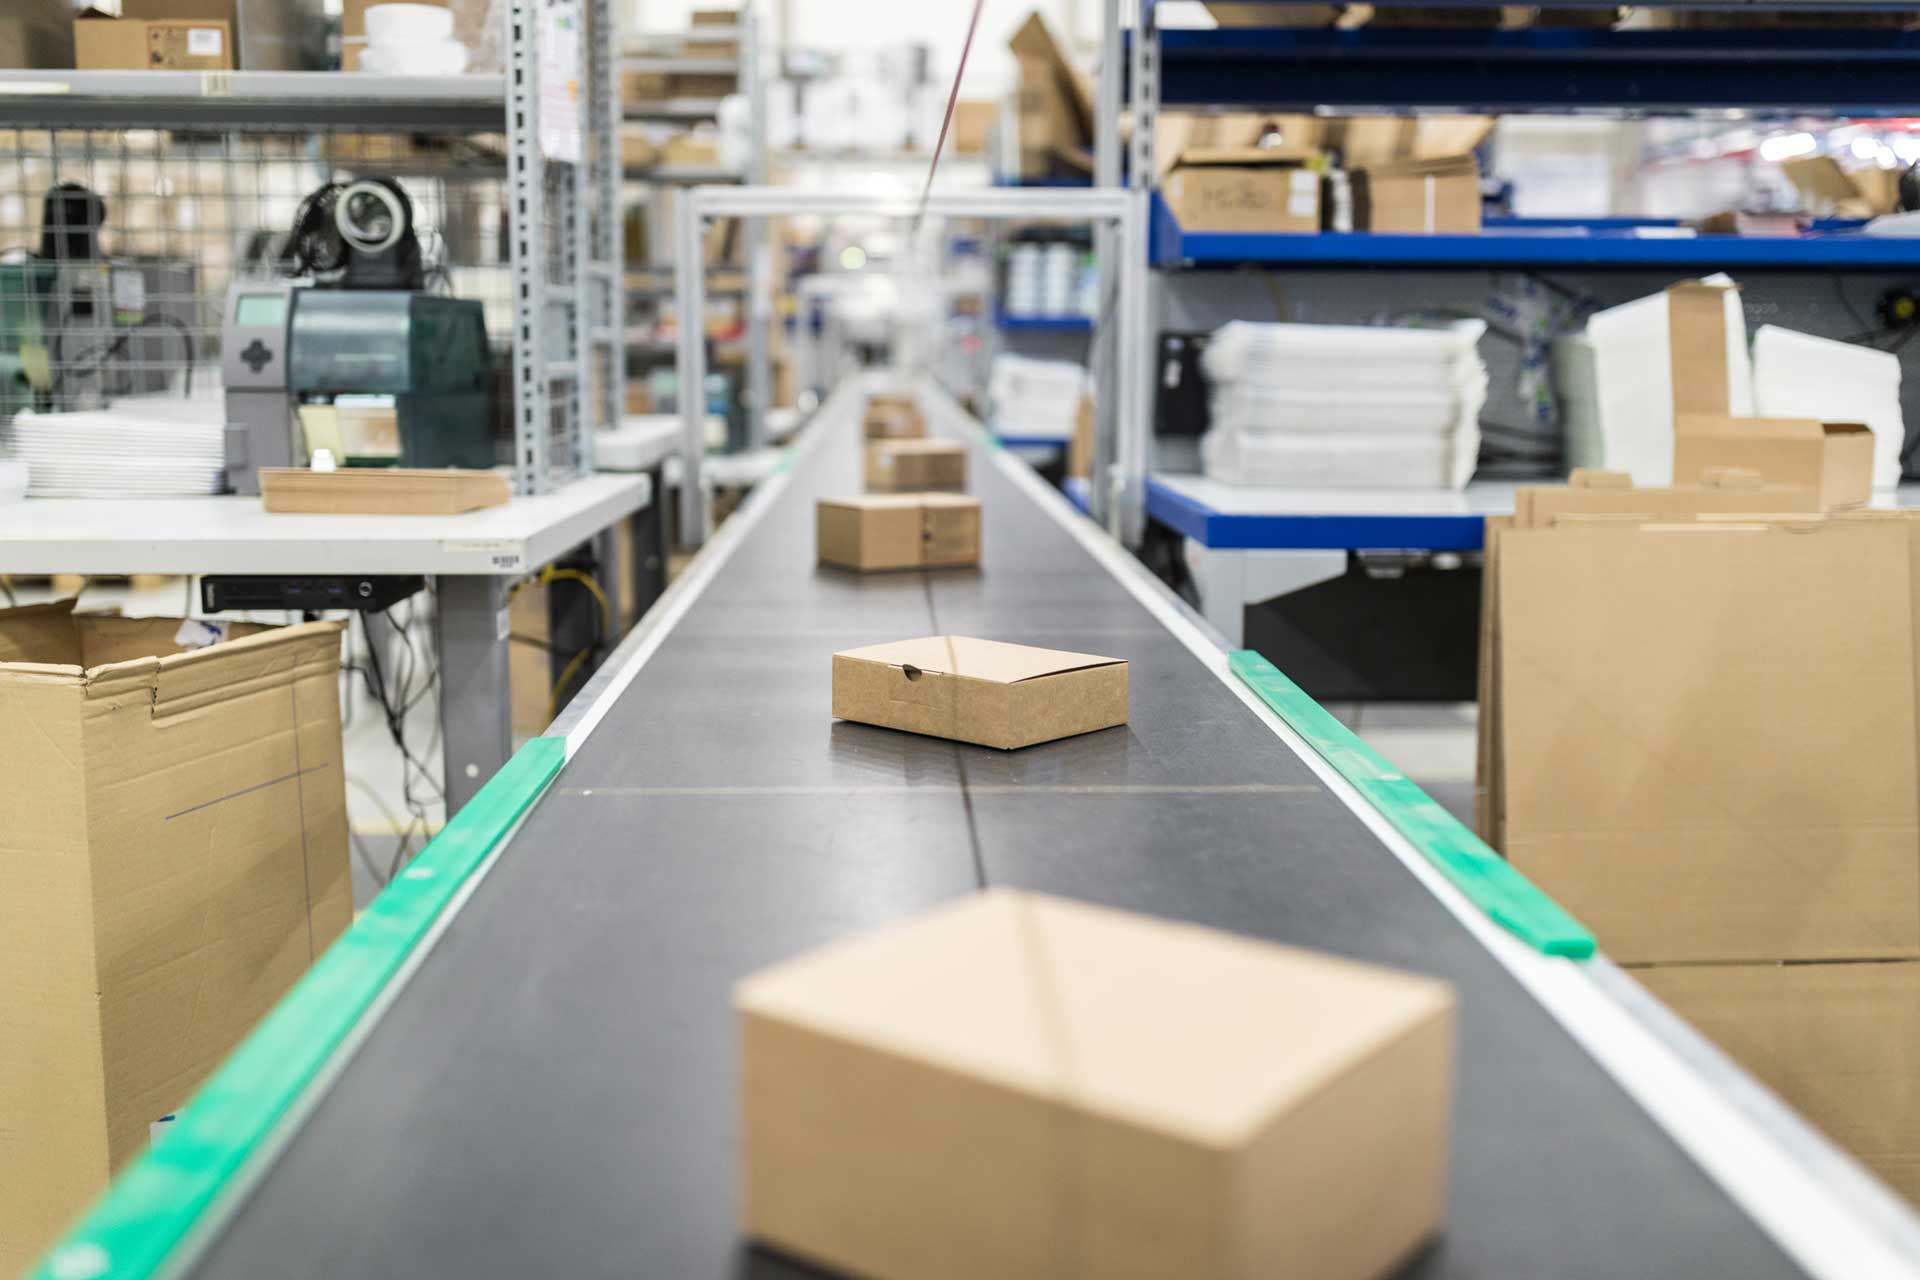 boxes_moving_down_conveyor_in_warehouse